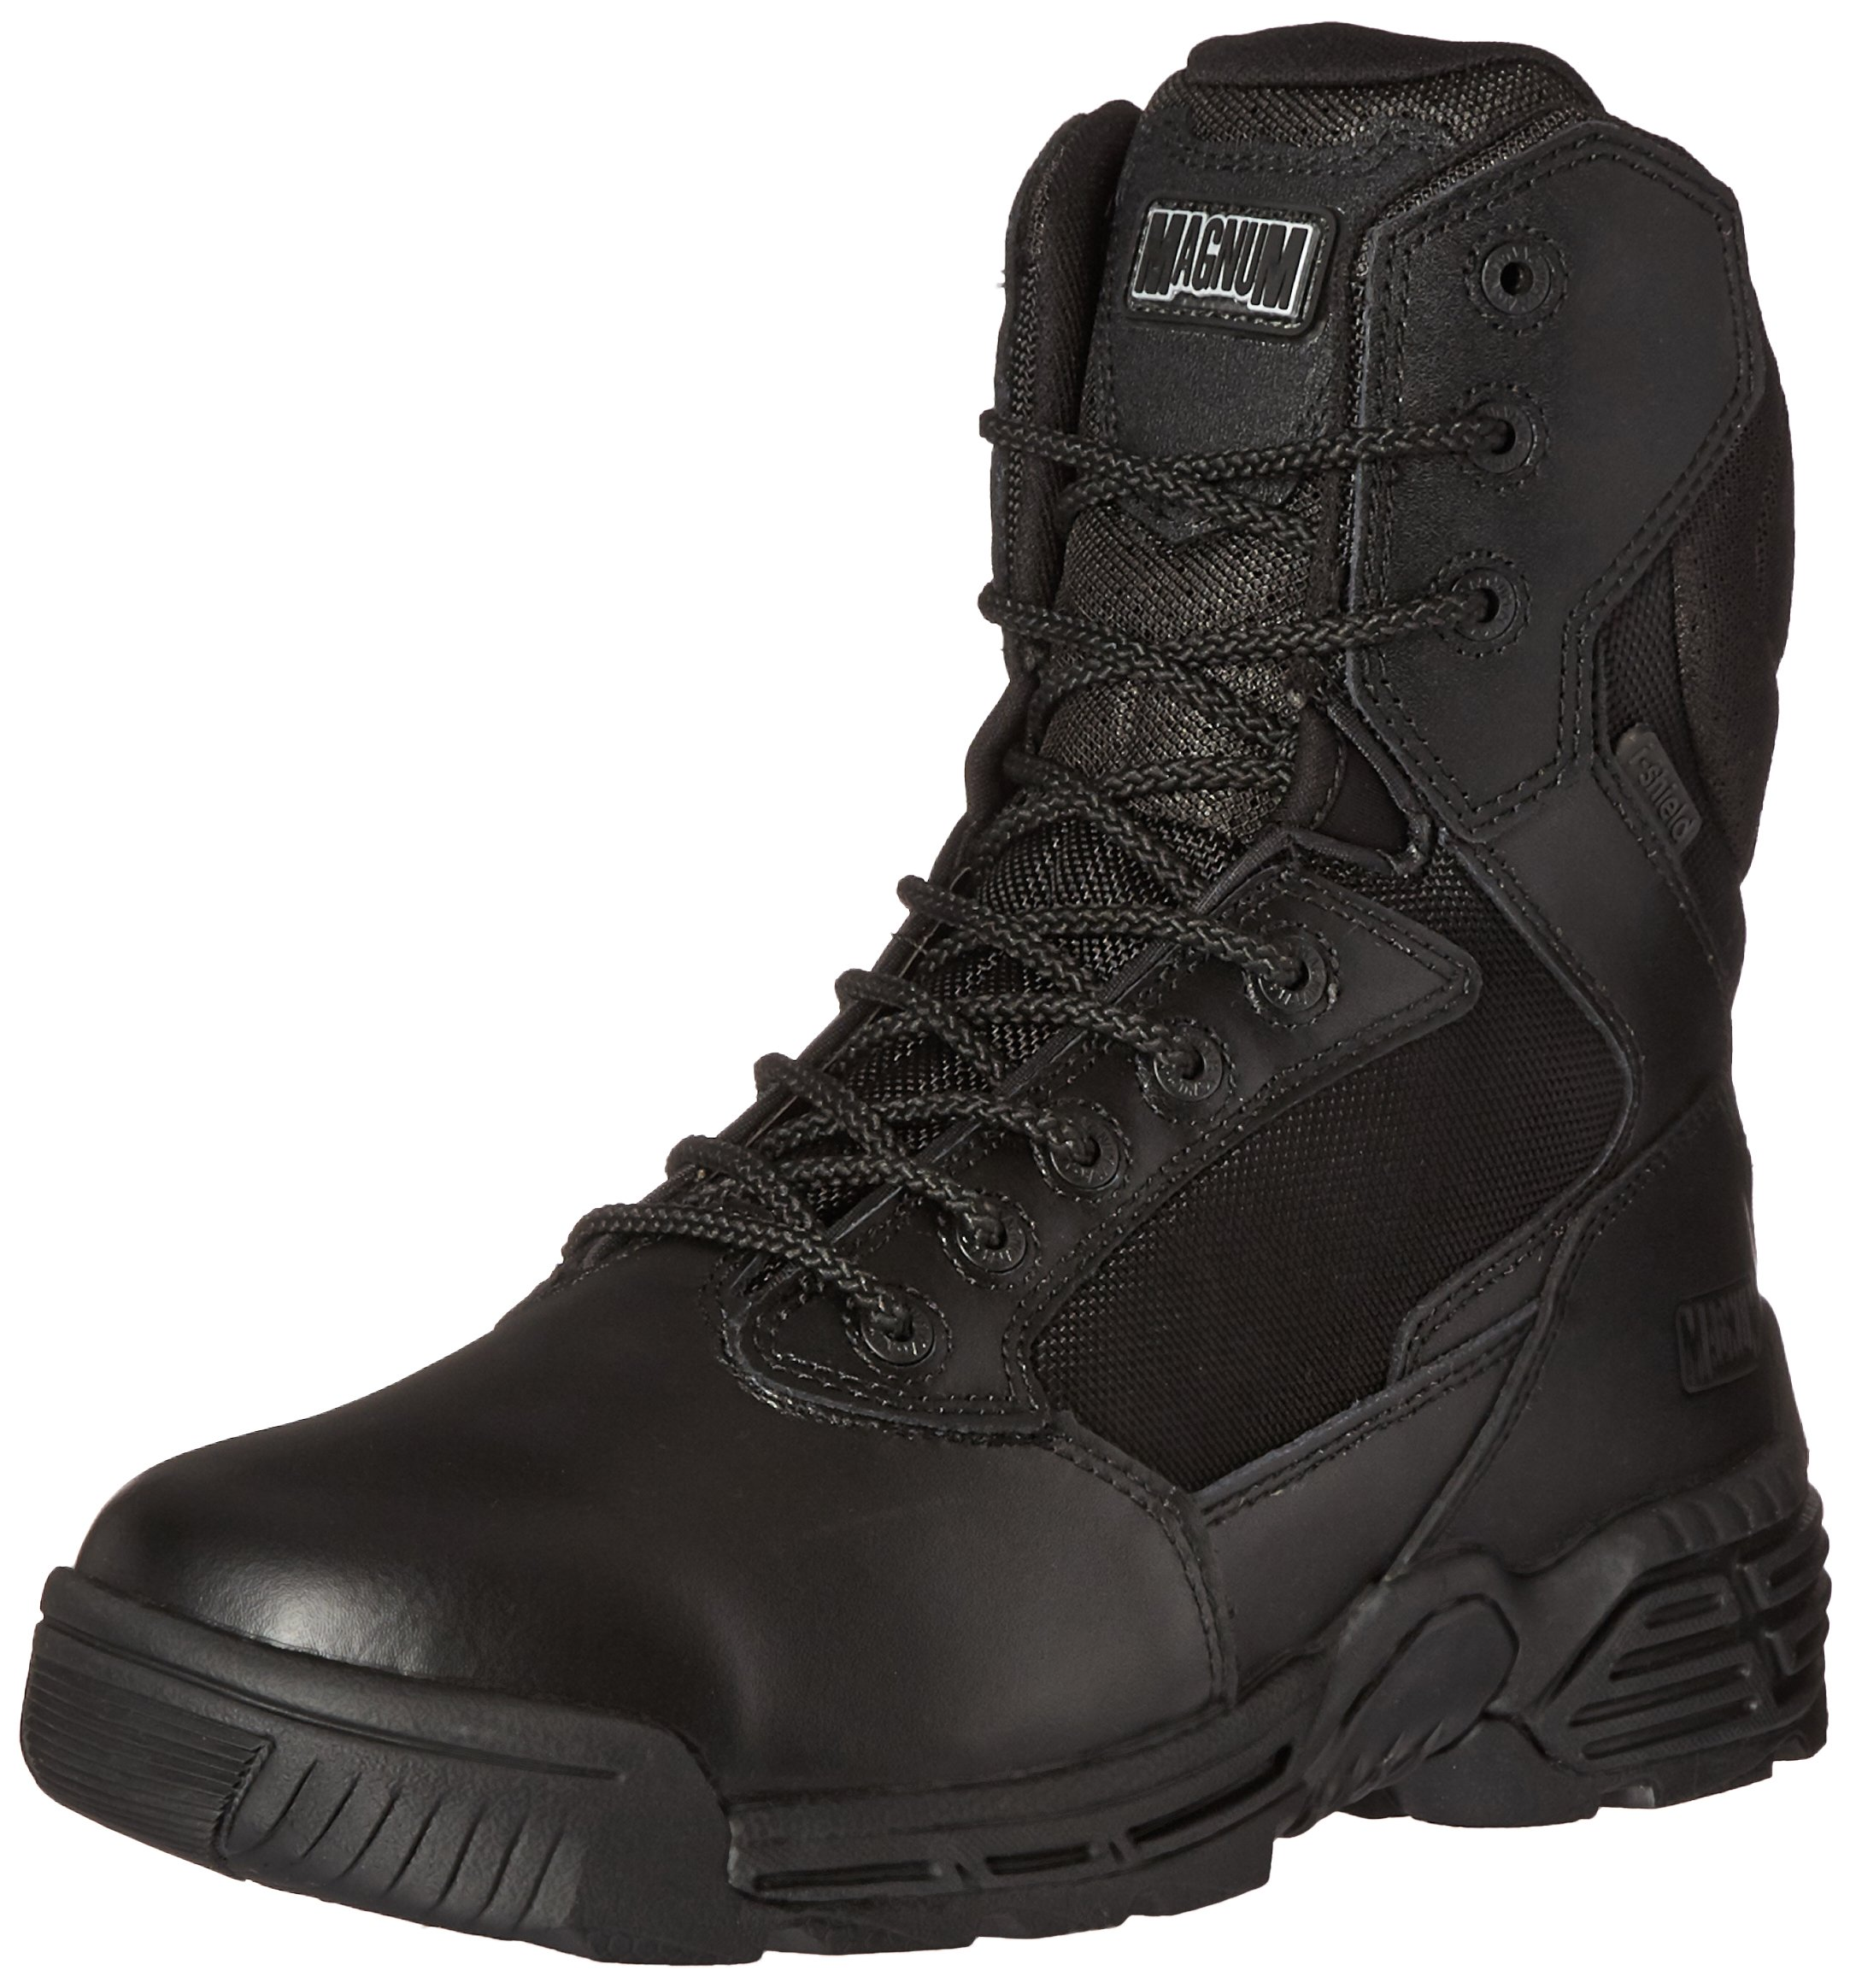 Magnum Men's Stealth Force 8.0 Side Zip Waterproof I-Shield Military and Tactical Boot, Black, 11.5 D US